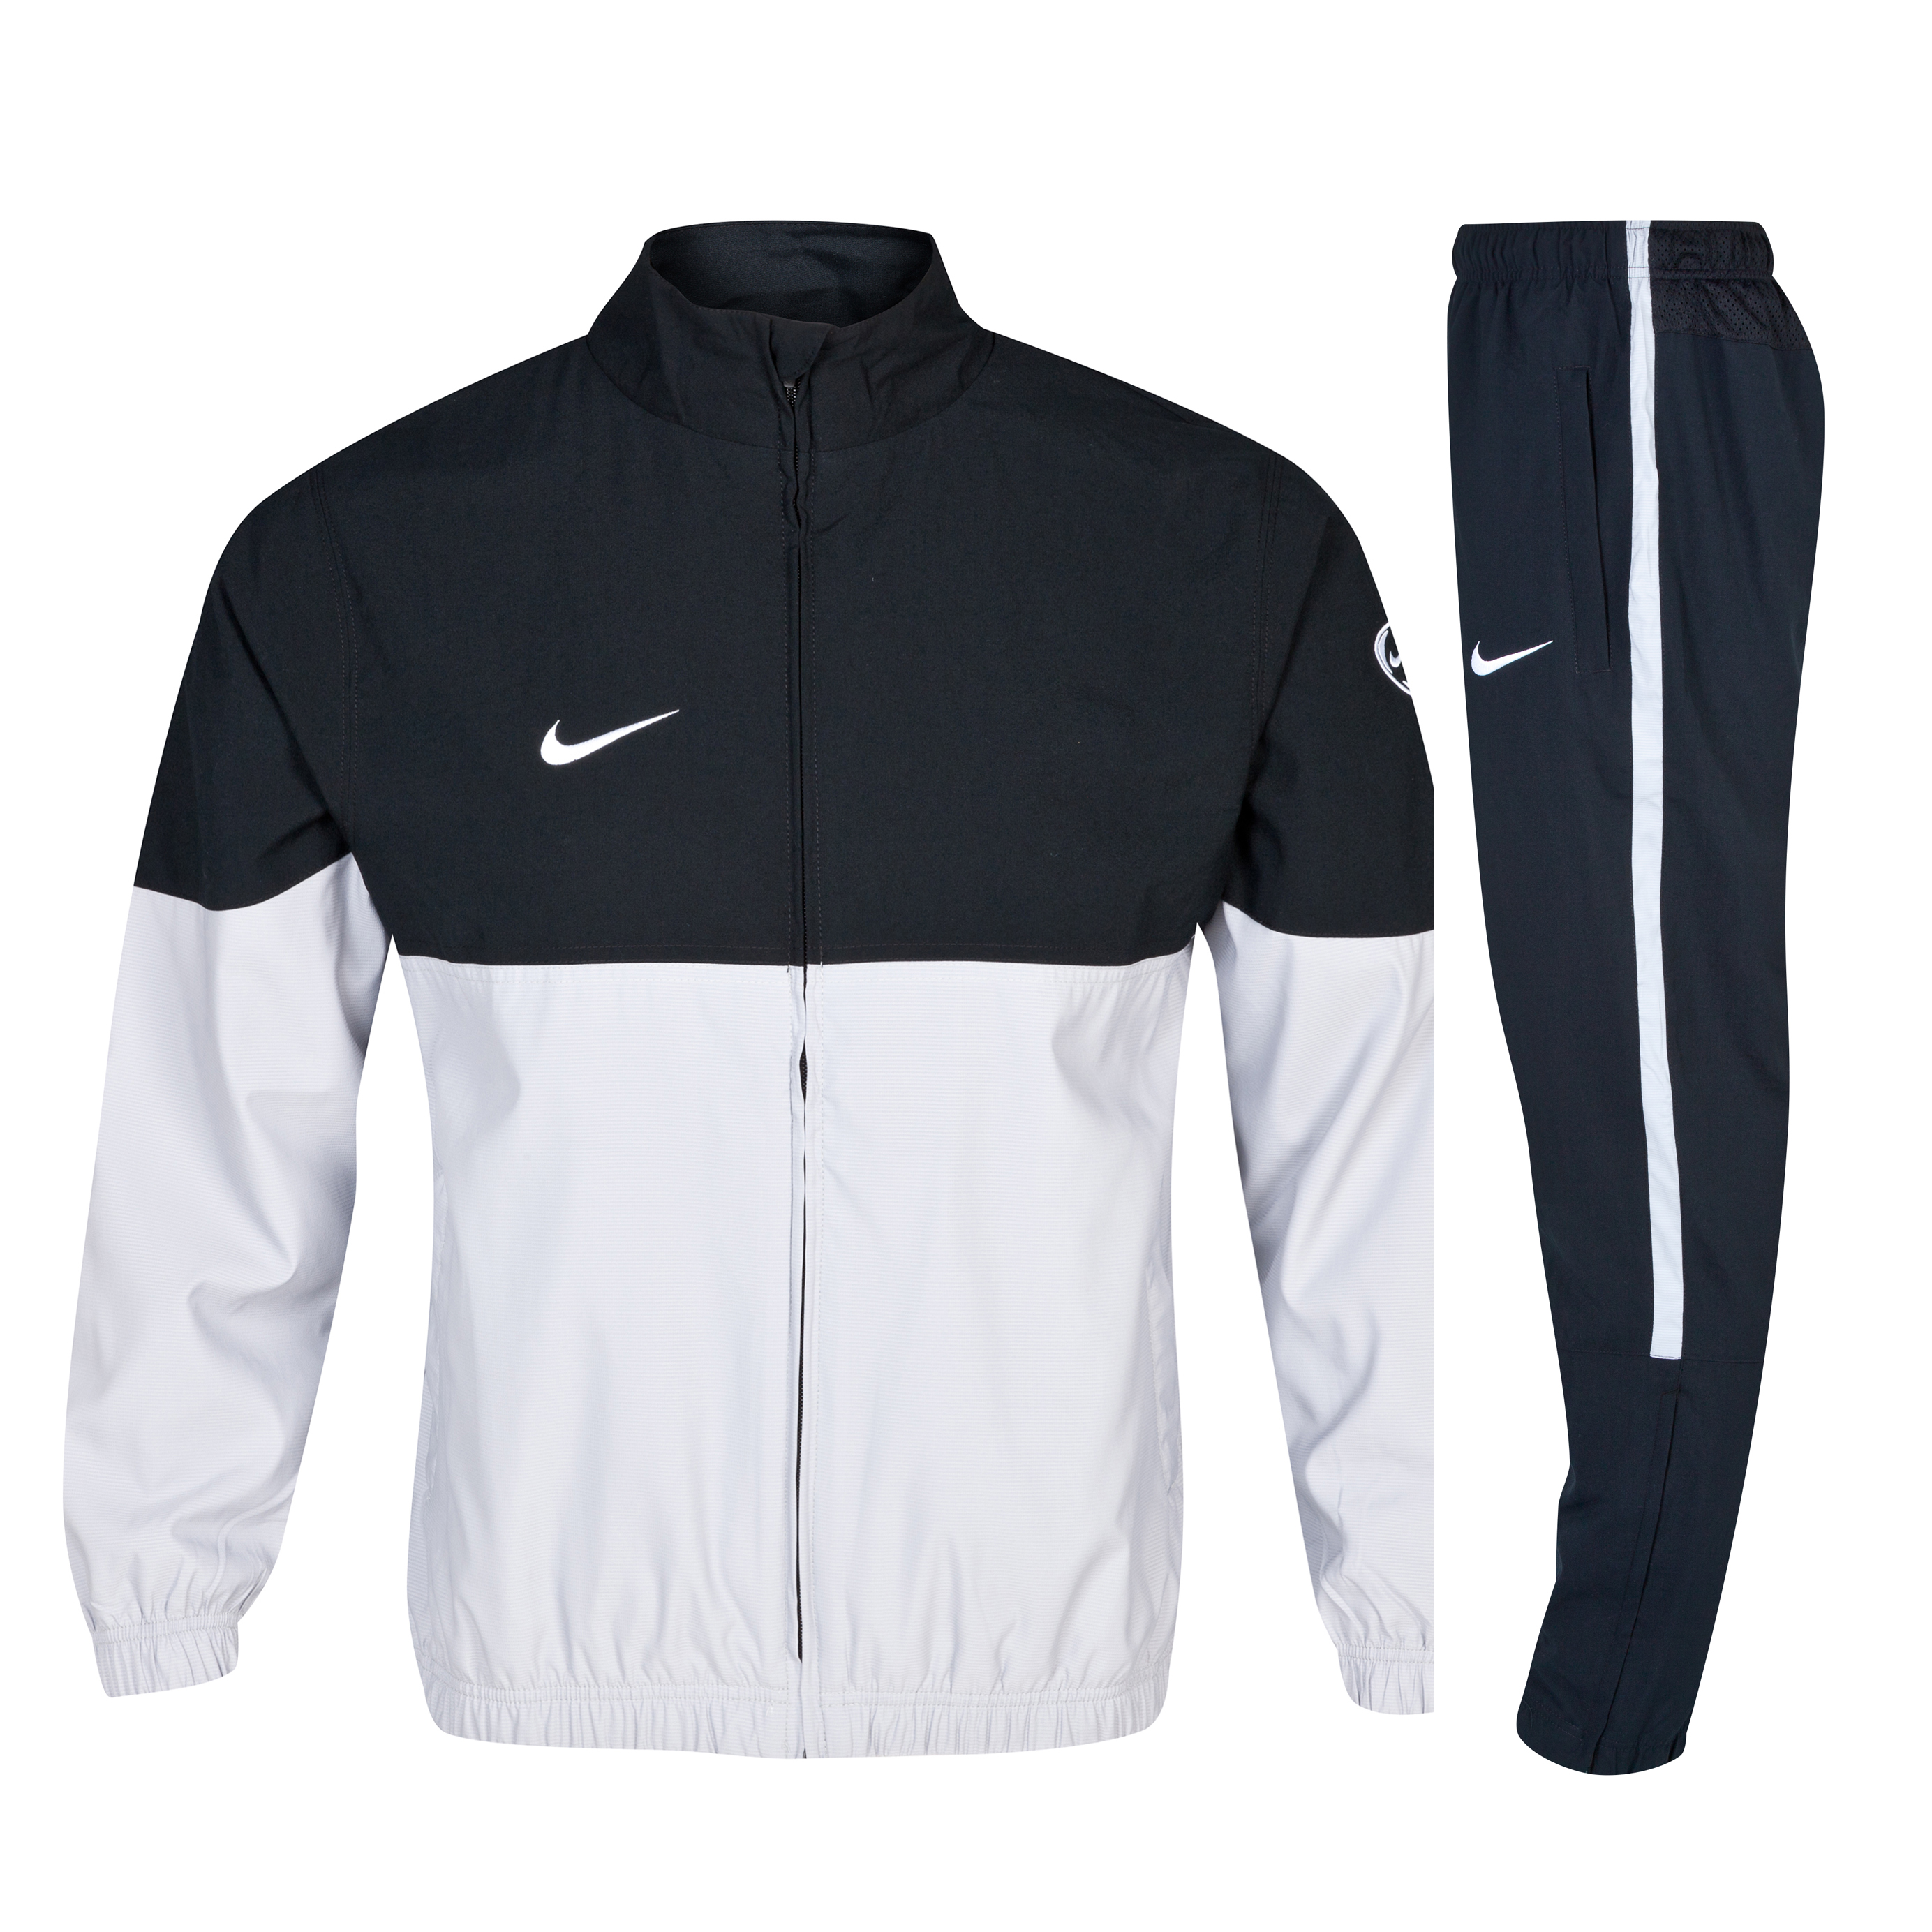 Nike Teamwear Woven Warm up Tracksuit - Silver / Black